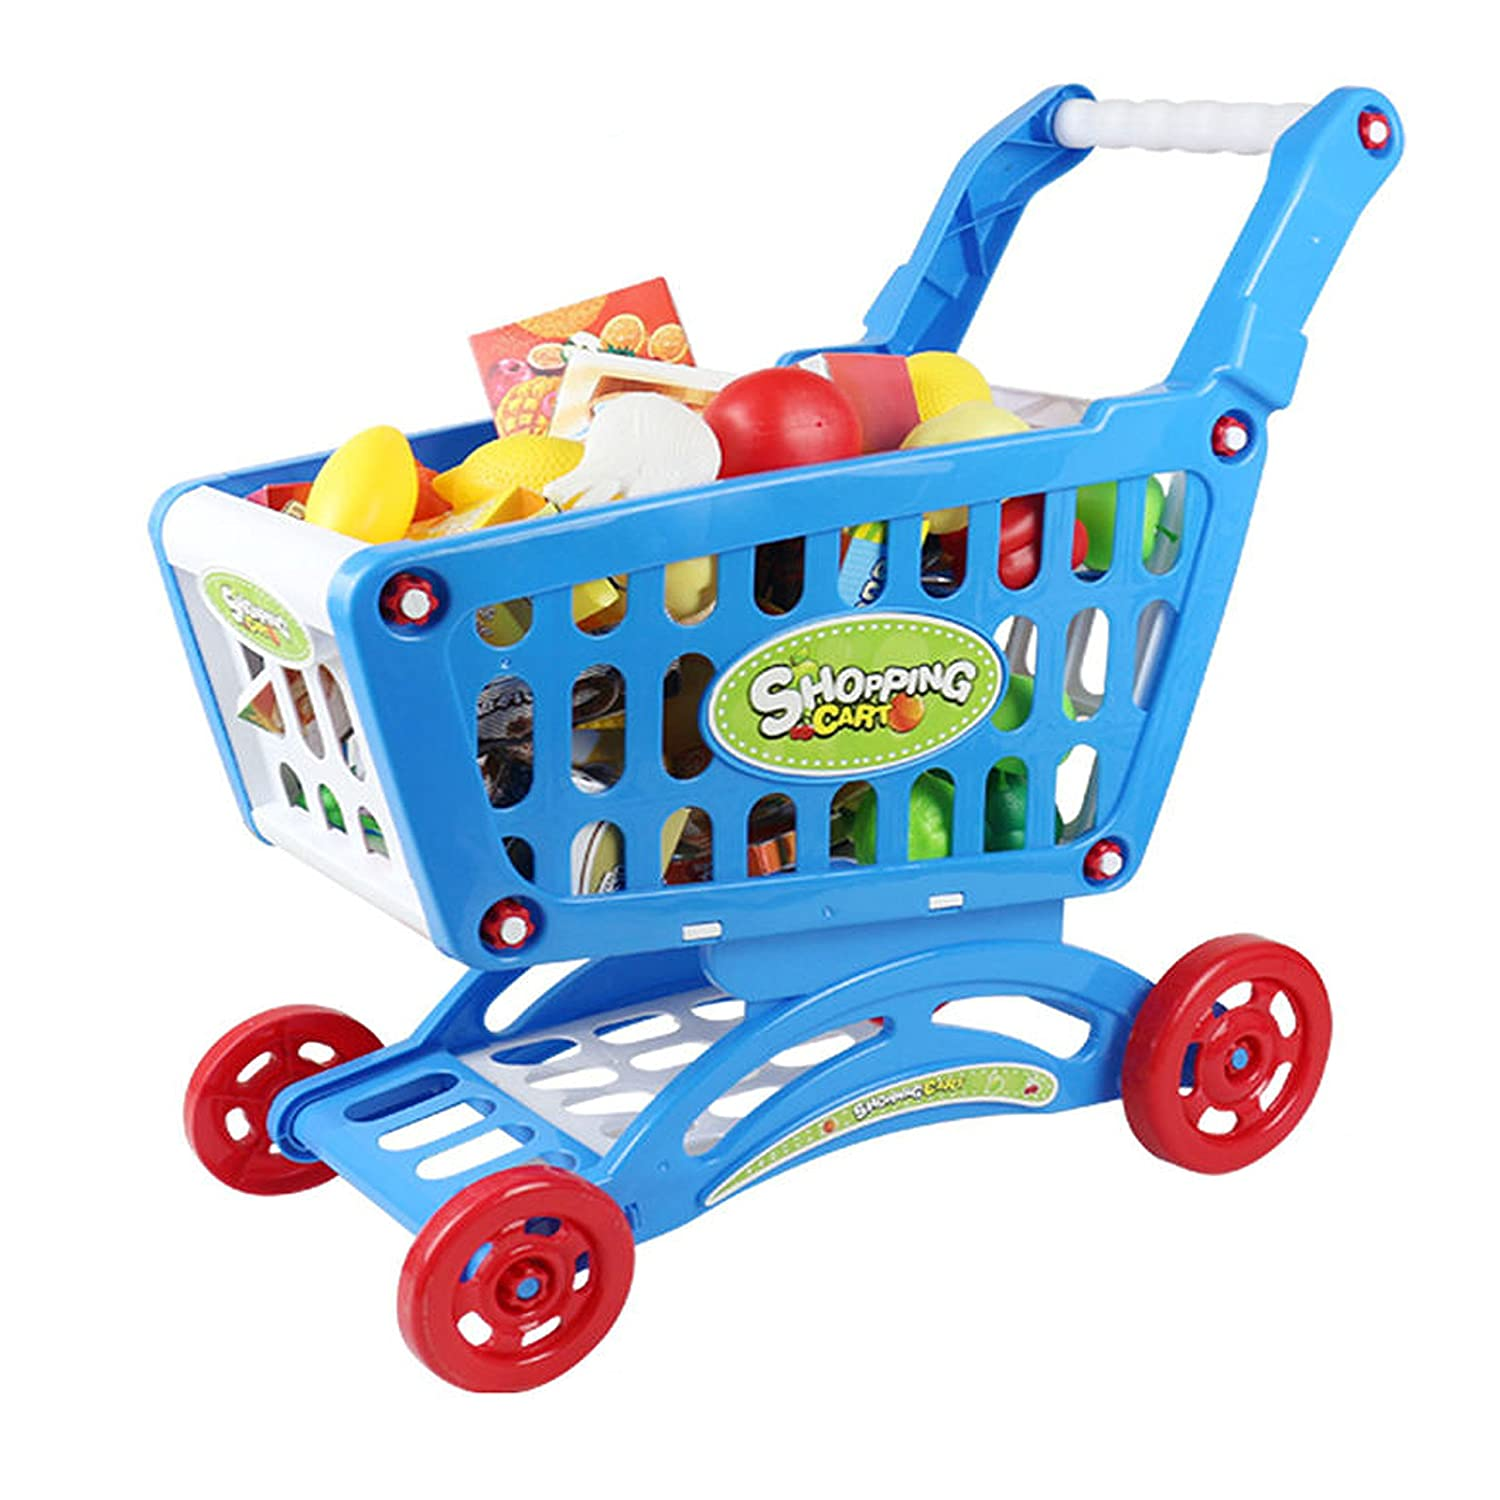 Great Christmas XMAS \ Birthday Gift New Blue Delex/® Children Shopping Cart Trolley PlaySet Includes 52 Grocery Shop Accessories